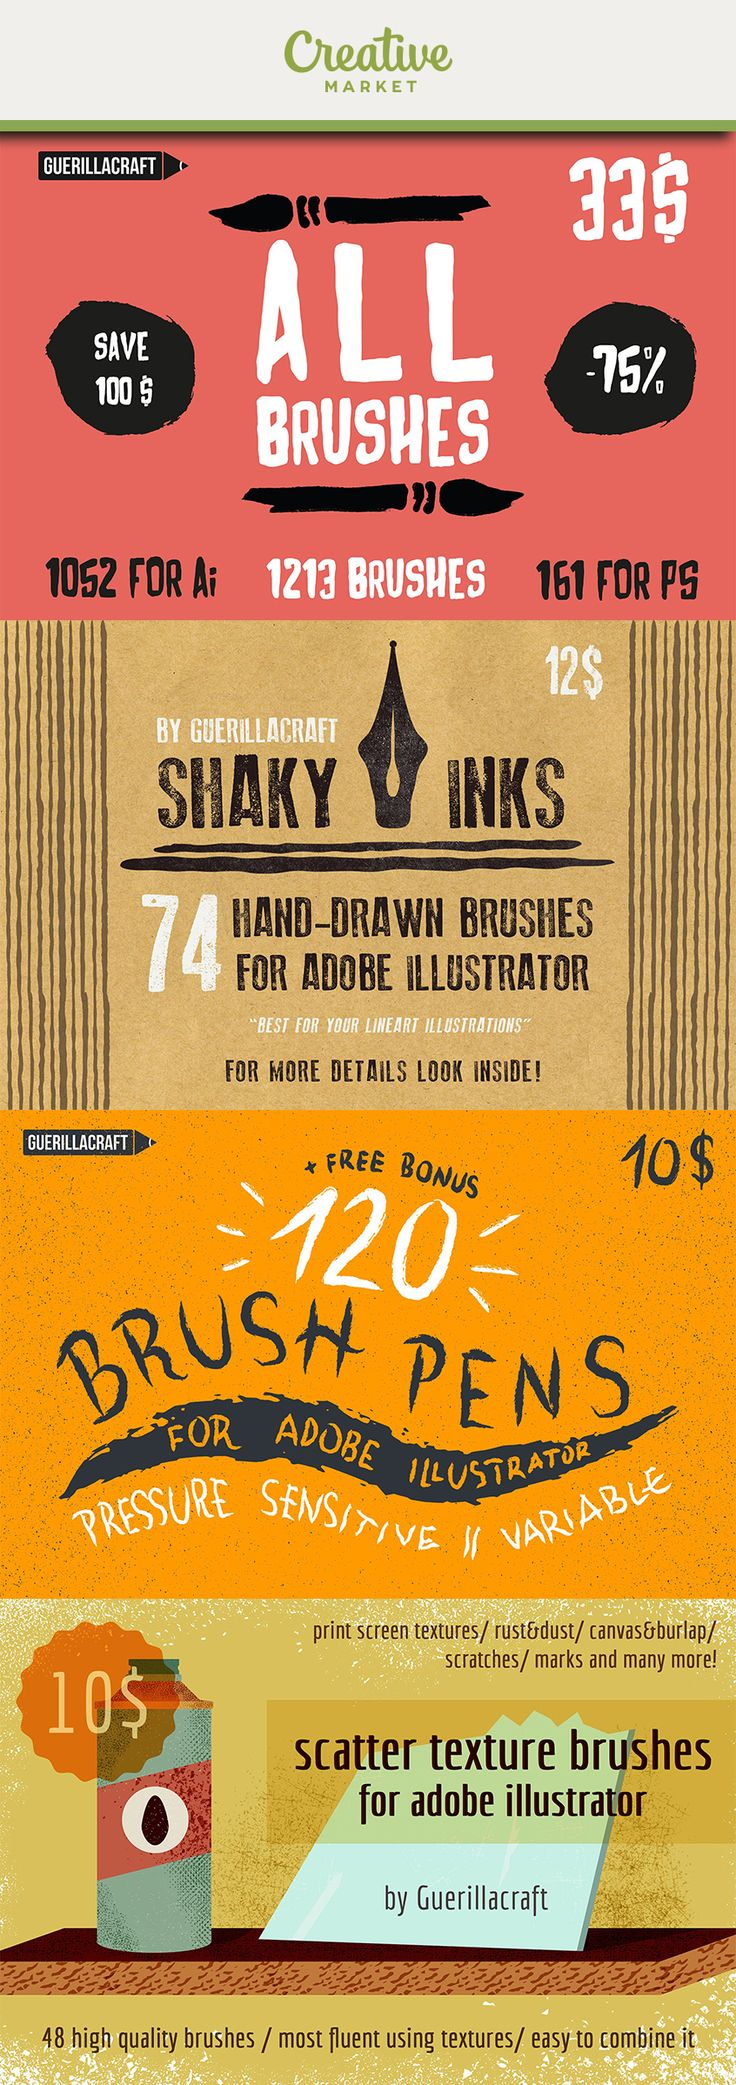 Ad: 1213 Brushes for Adobe Illustrator and Adobe Photoshop in one Megabundle. With one purchase you will get tons of brushes for your next future project. Update your brush library with Guerillacraft brushes and get access to various brushes made with various media - from ink, grain textured brushes to awesome linocuts for Adobe Illustrator. Get it now on Creative Market!